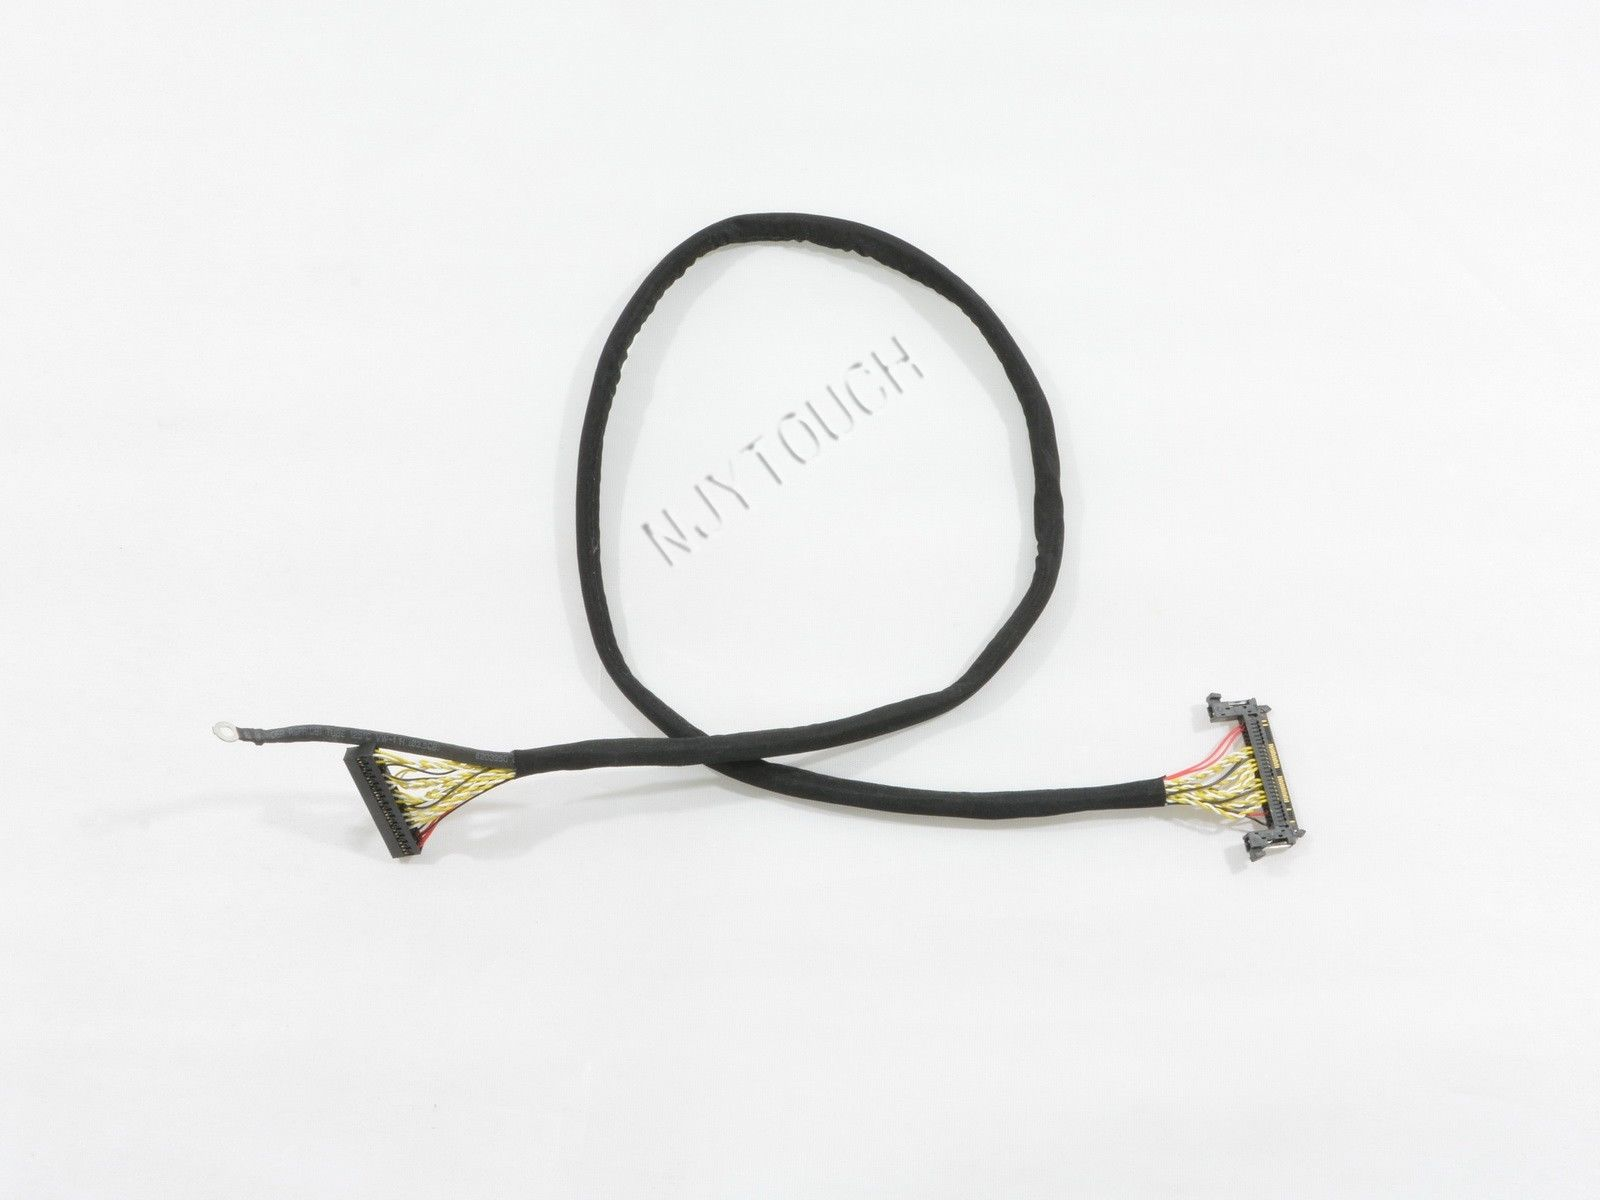 FI-RE51 Universal LVDS Cable CHIMEI LG 1920*1080 HD LCD